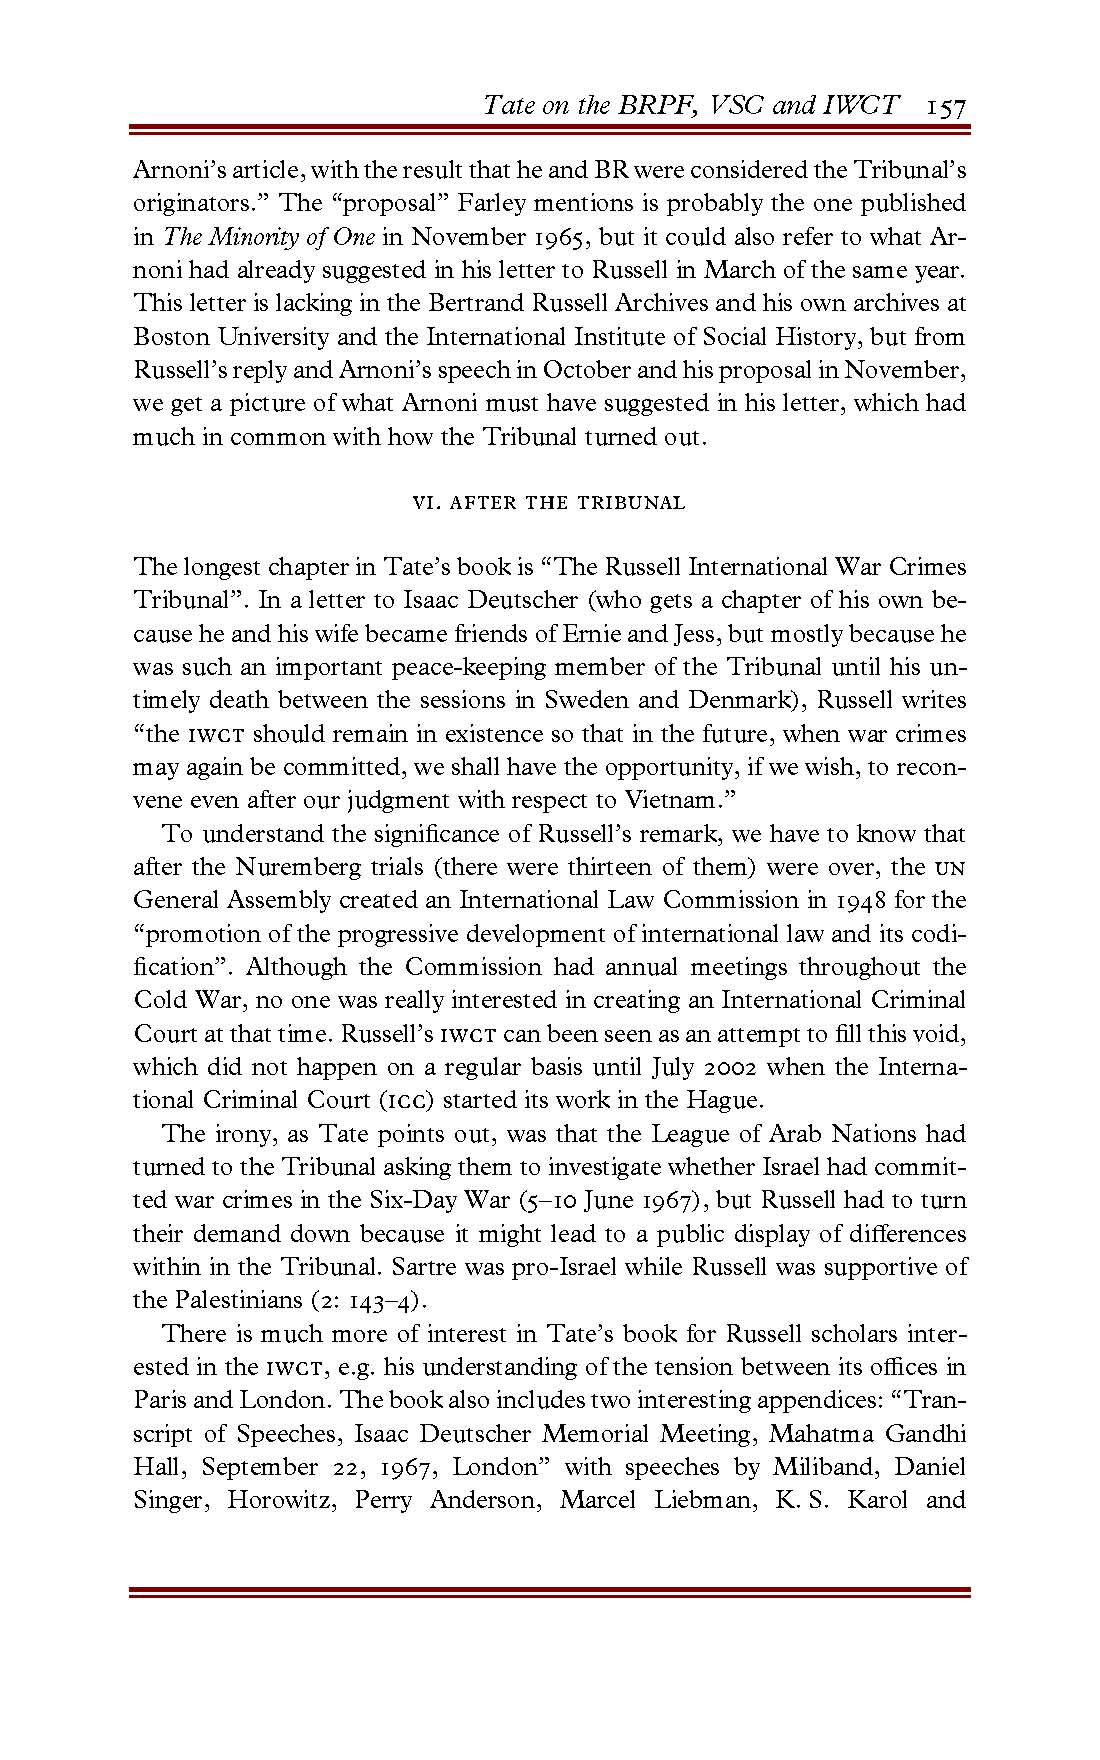 Anderson-- Pages from RJ 3402 050 red-5 (2)-1_Page_23